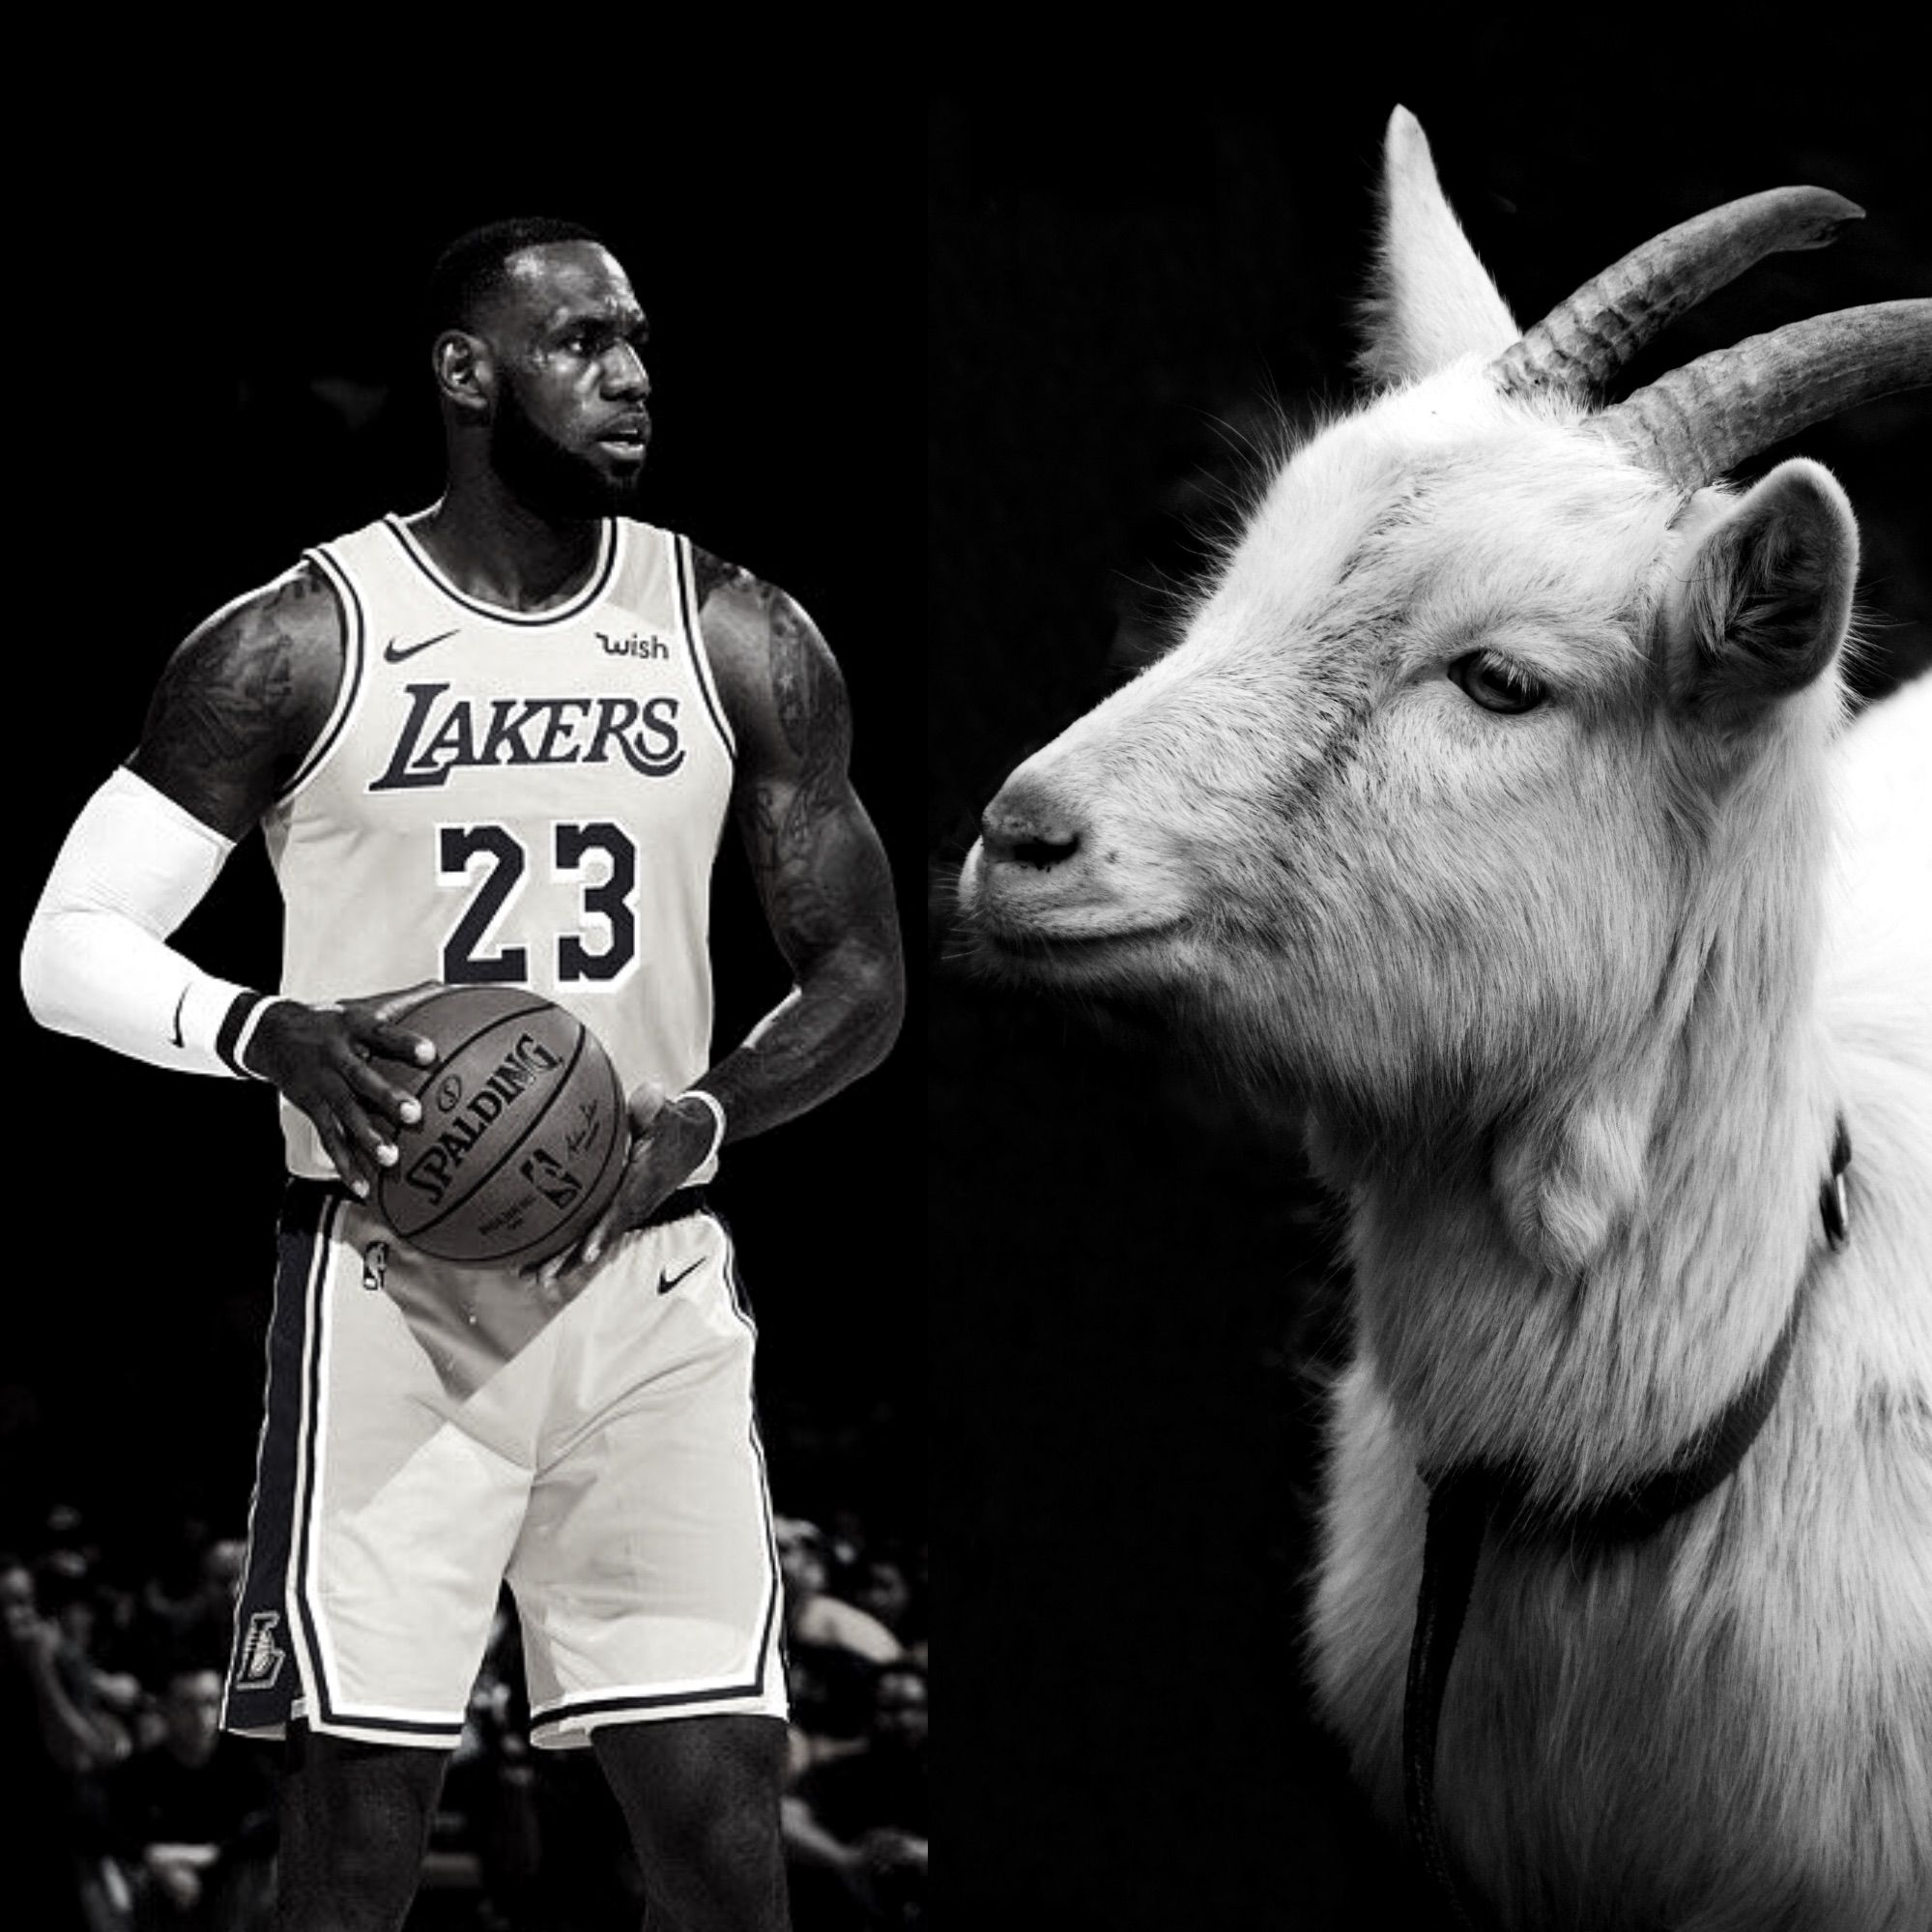 LeBron James is the GOAT and it's NOT EVEN CLOSE